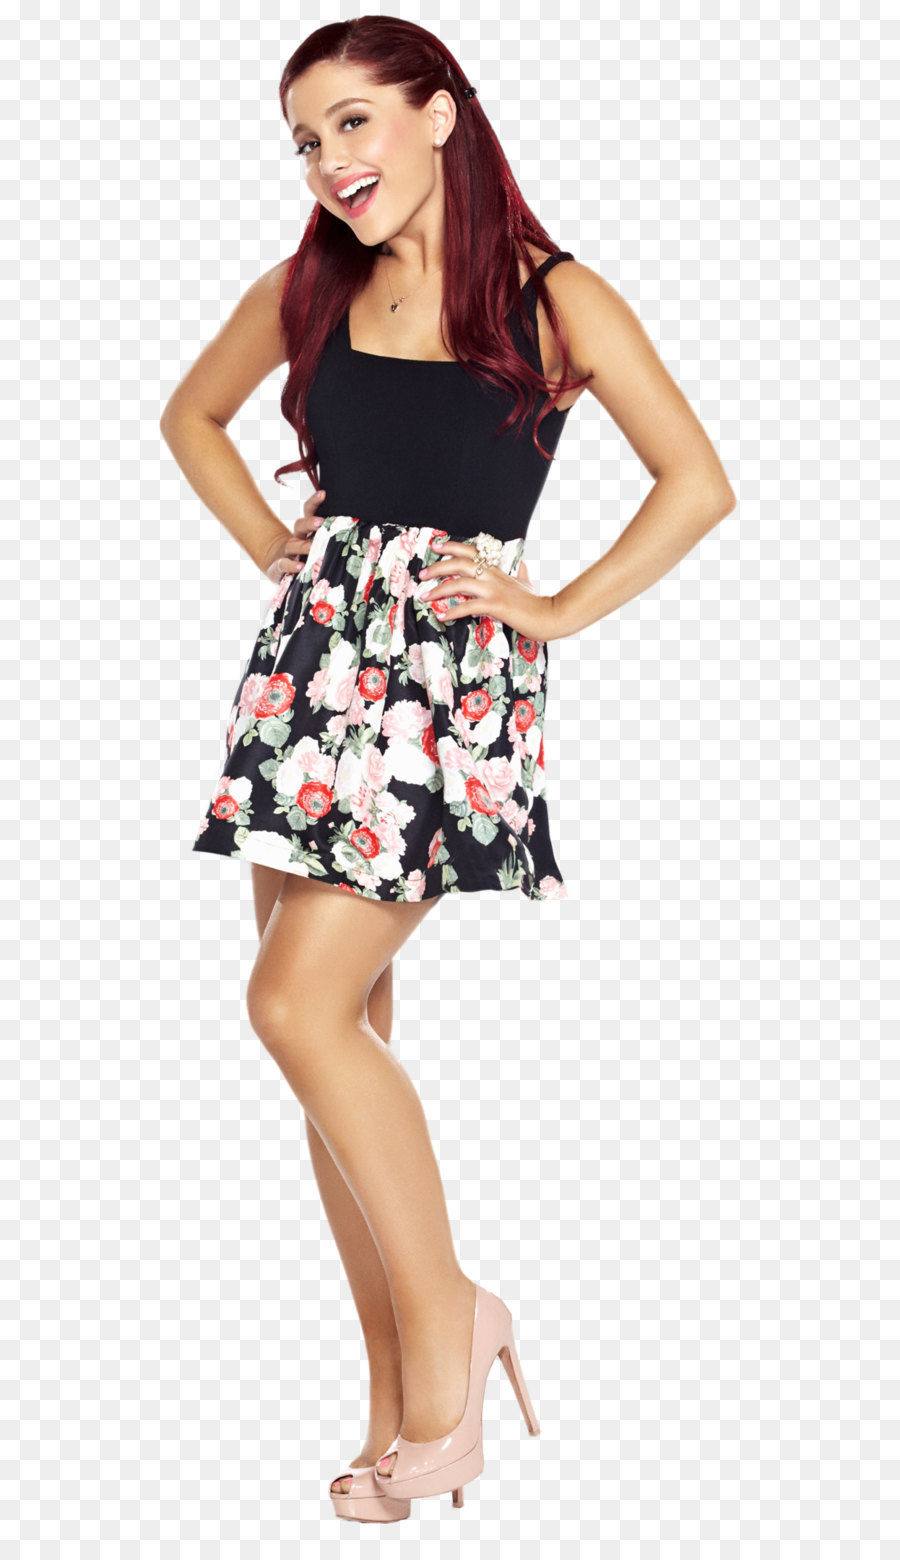 Cat Valentine Outfits On Victorious | www.pixshark.com - Images Galleries With A Bite!